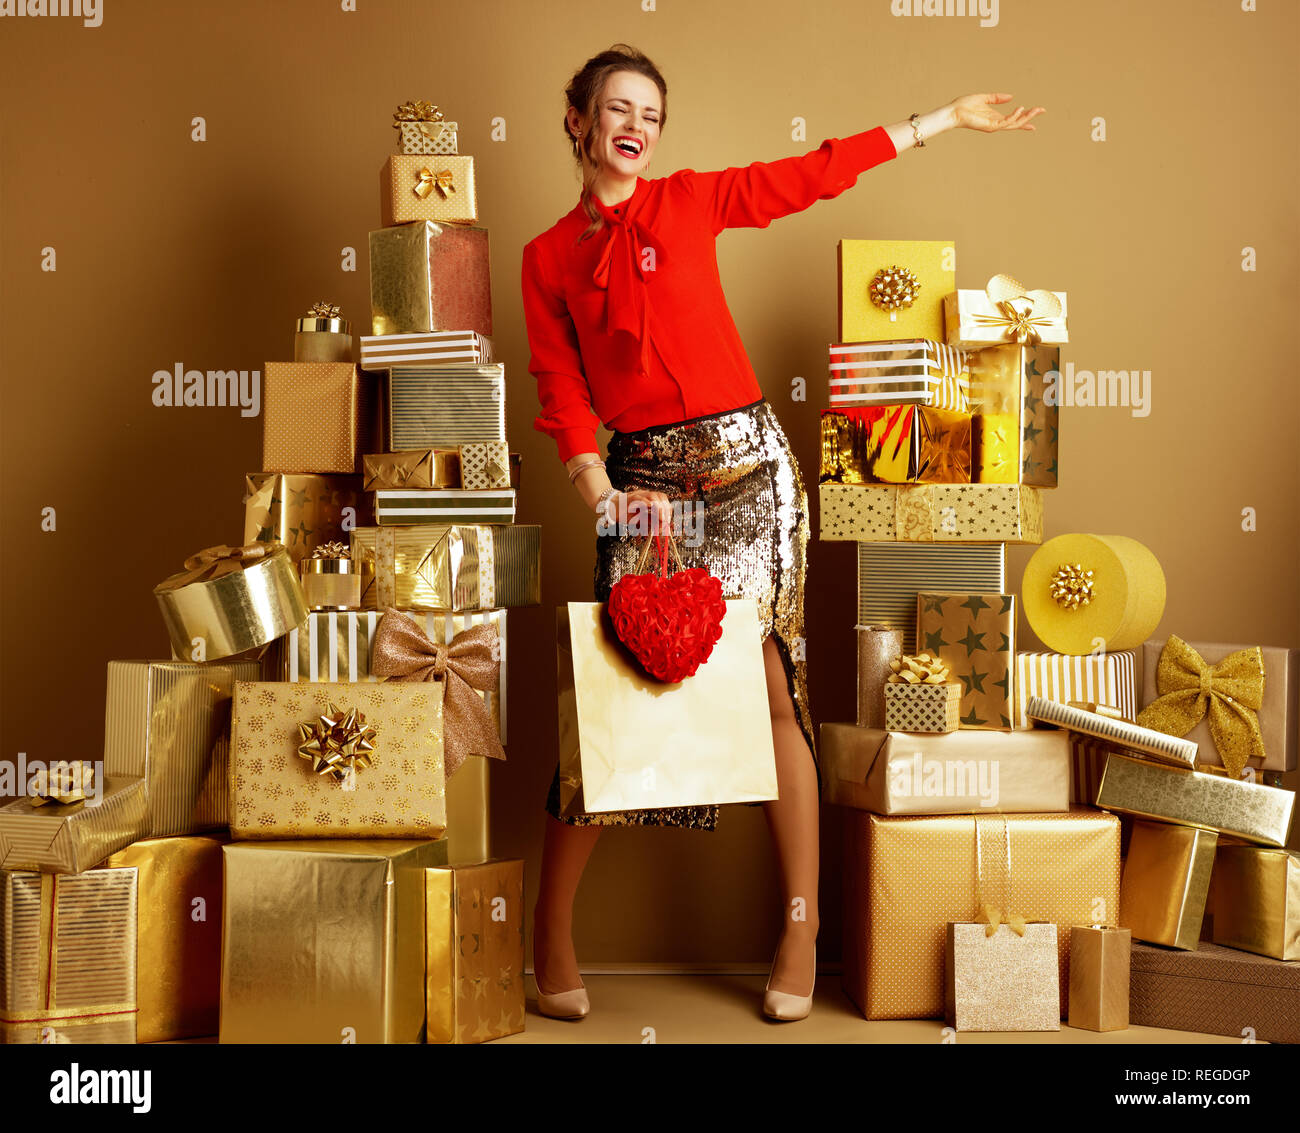 974839acfc1c Full length portrait of happy stylish fashion-monger in red blouse and  golden sparkly sequin